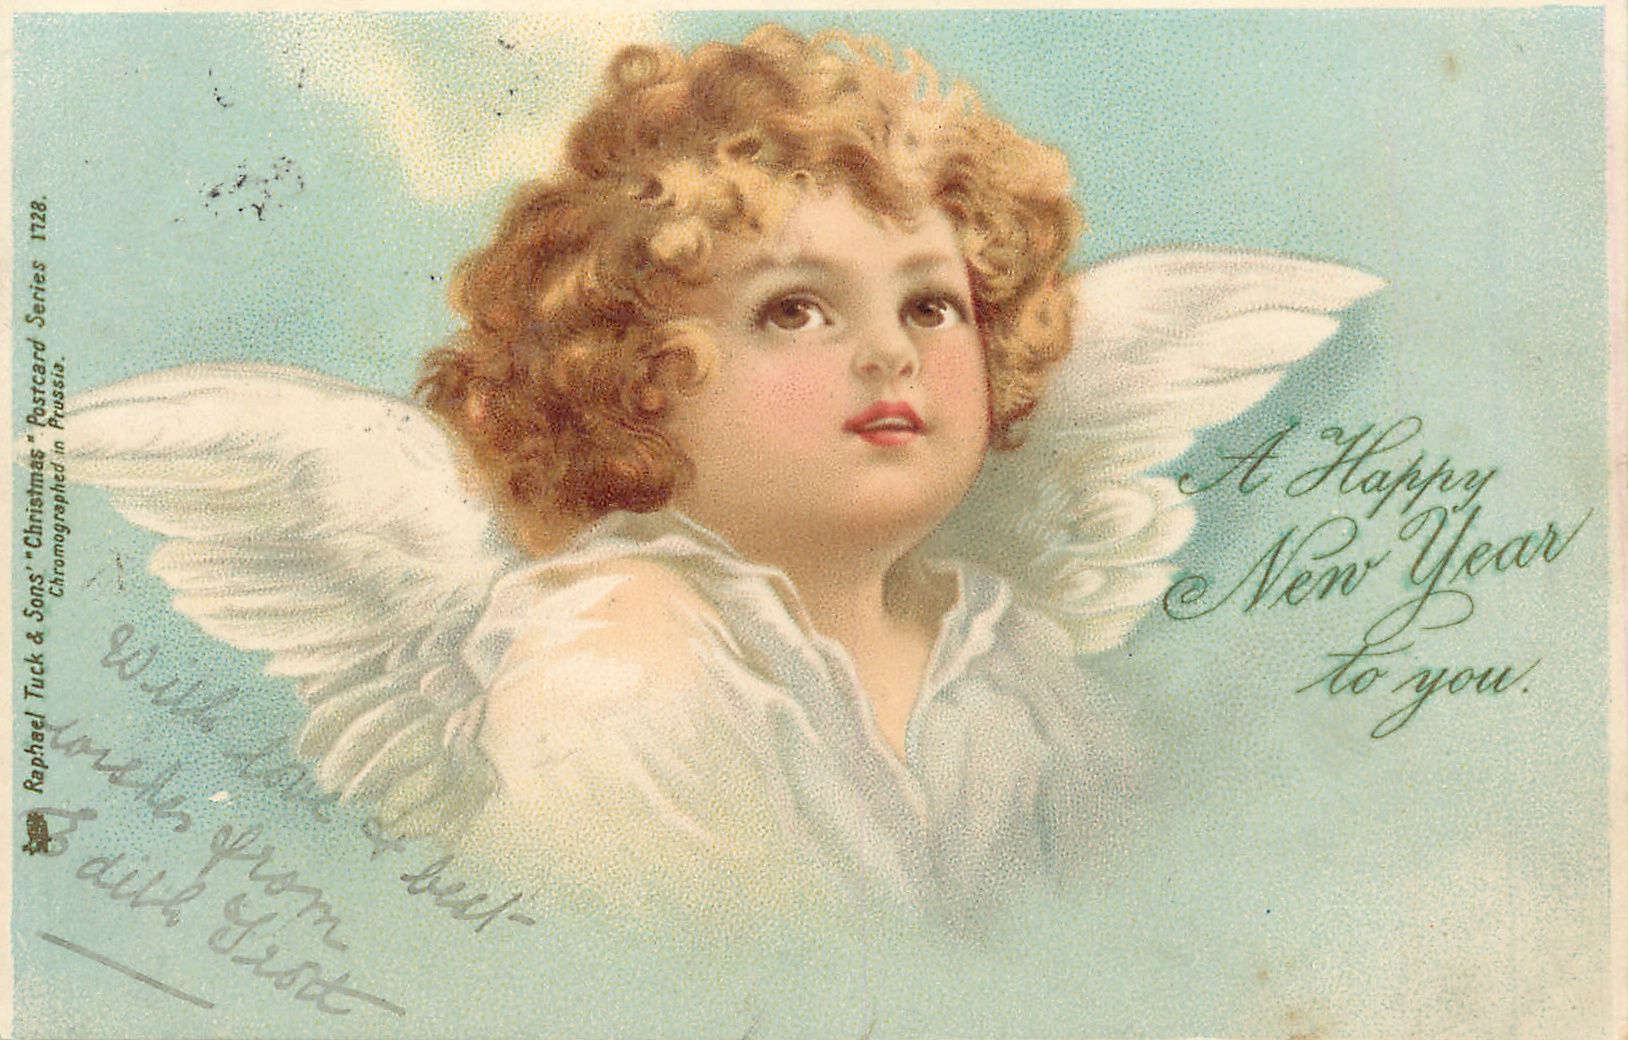 a happy new year to you brown eyed angel faces slight right looking